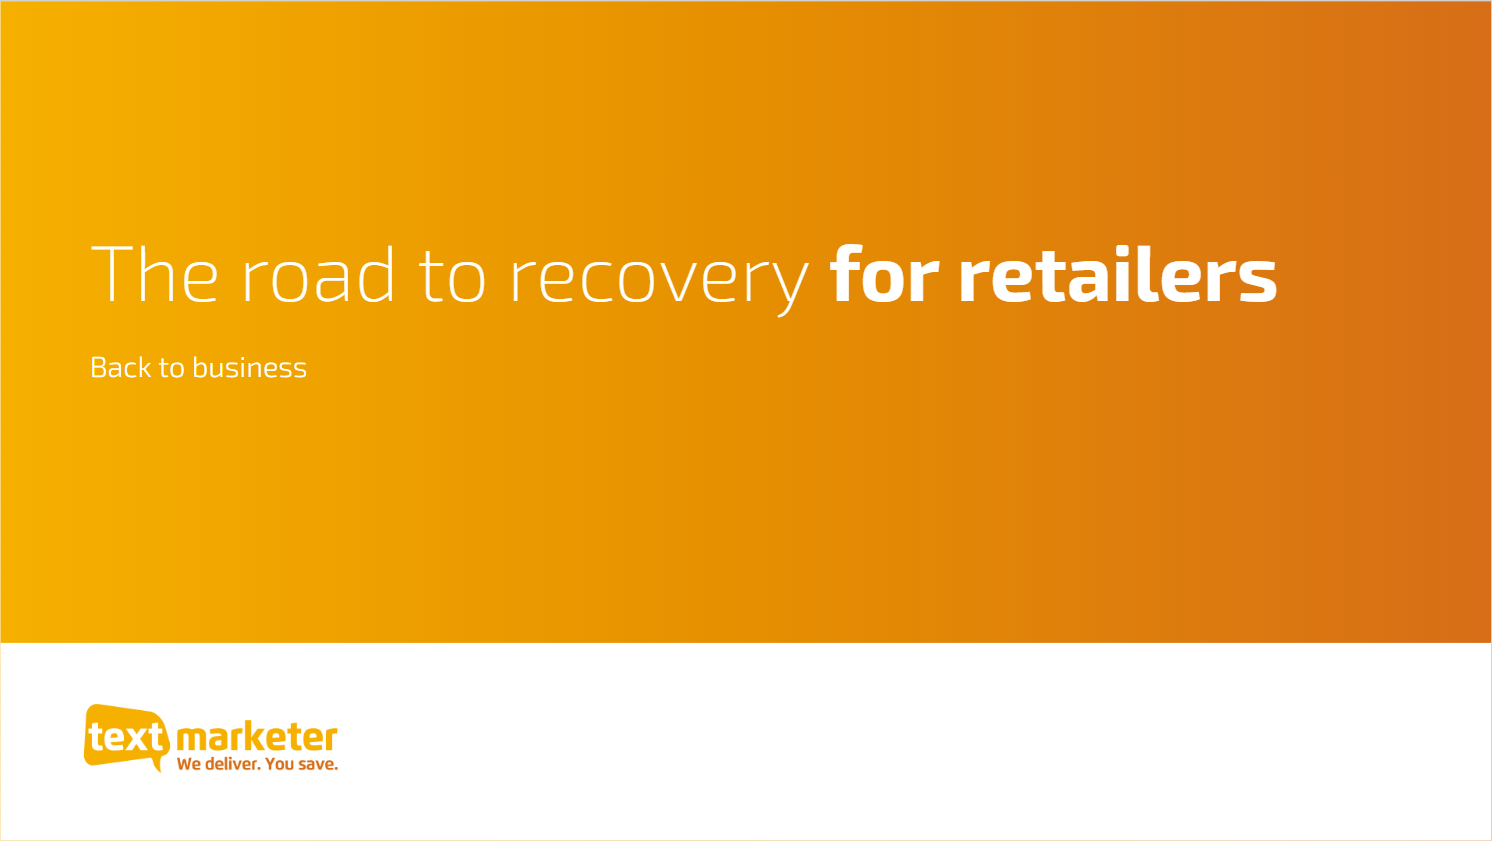 The road to recovery for retailers